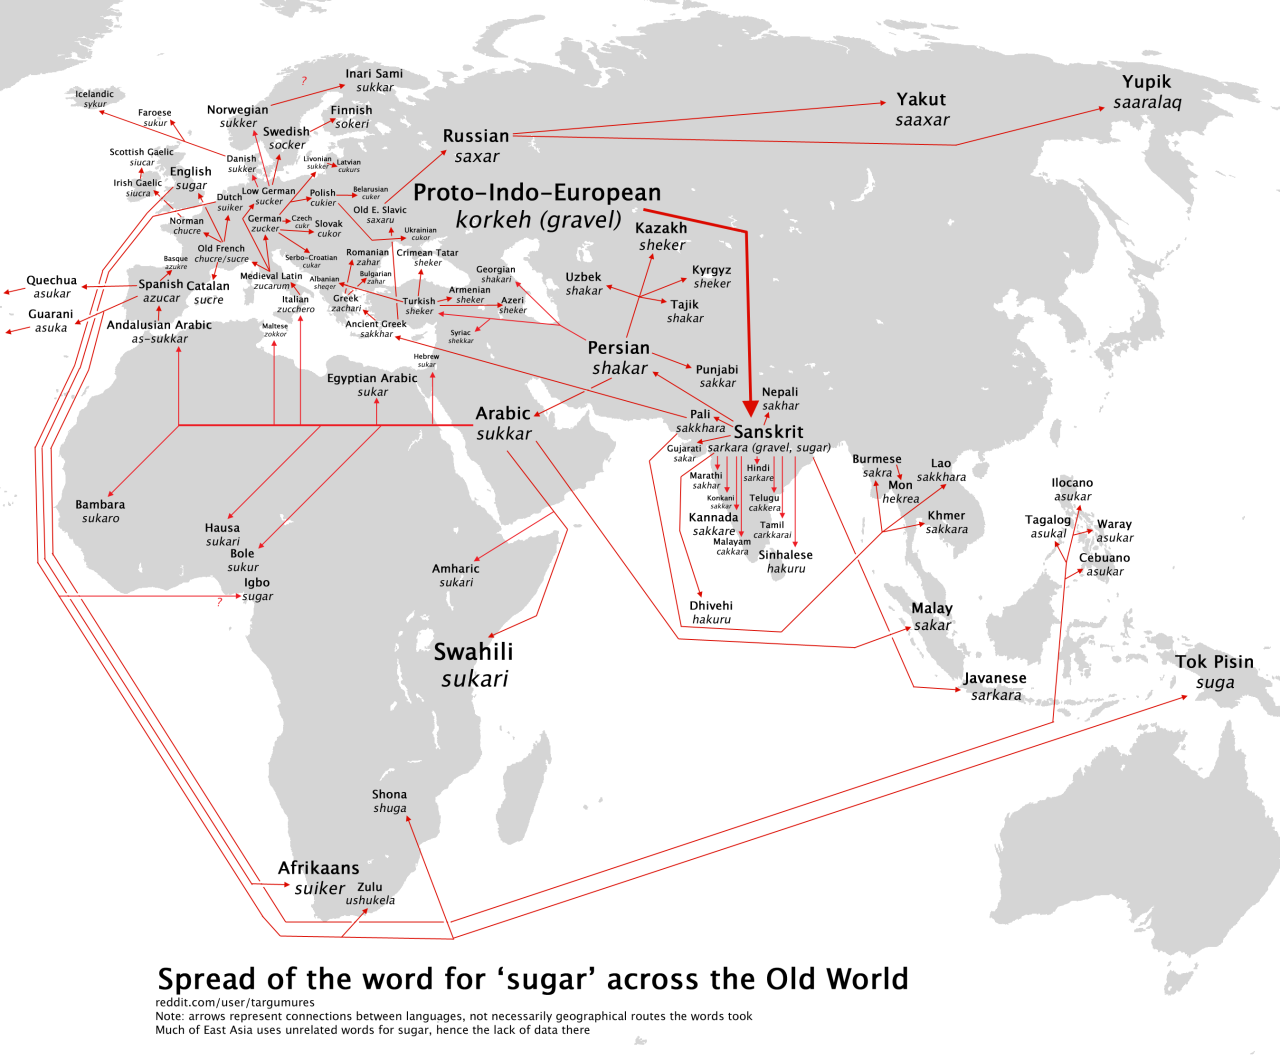 Spread of the word for 'sugar' across the old world